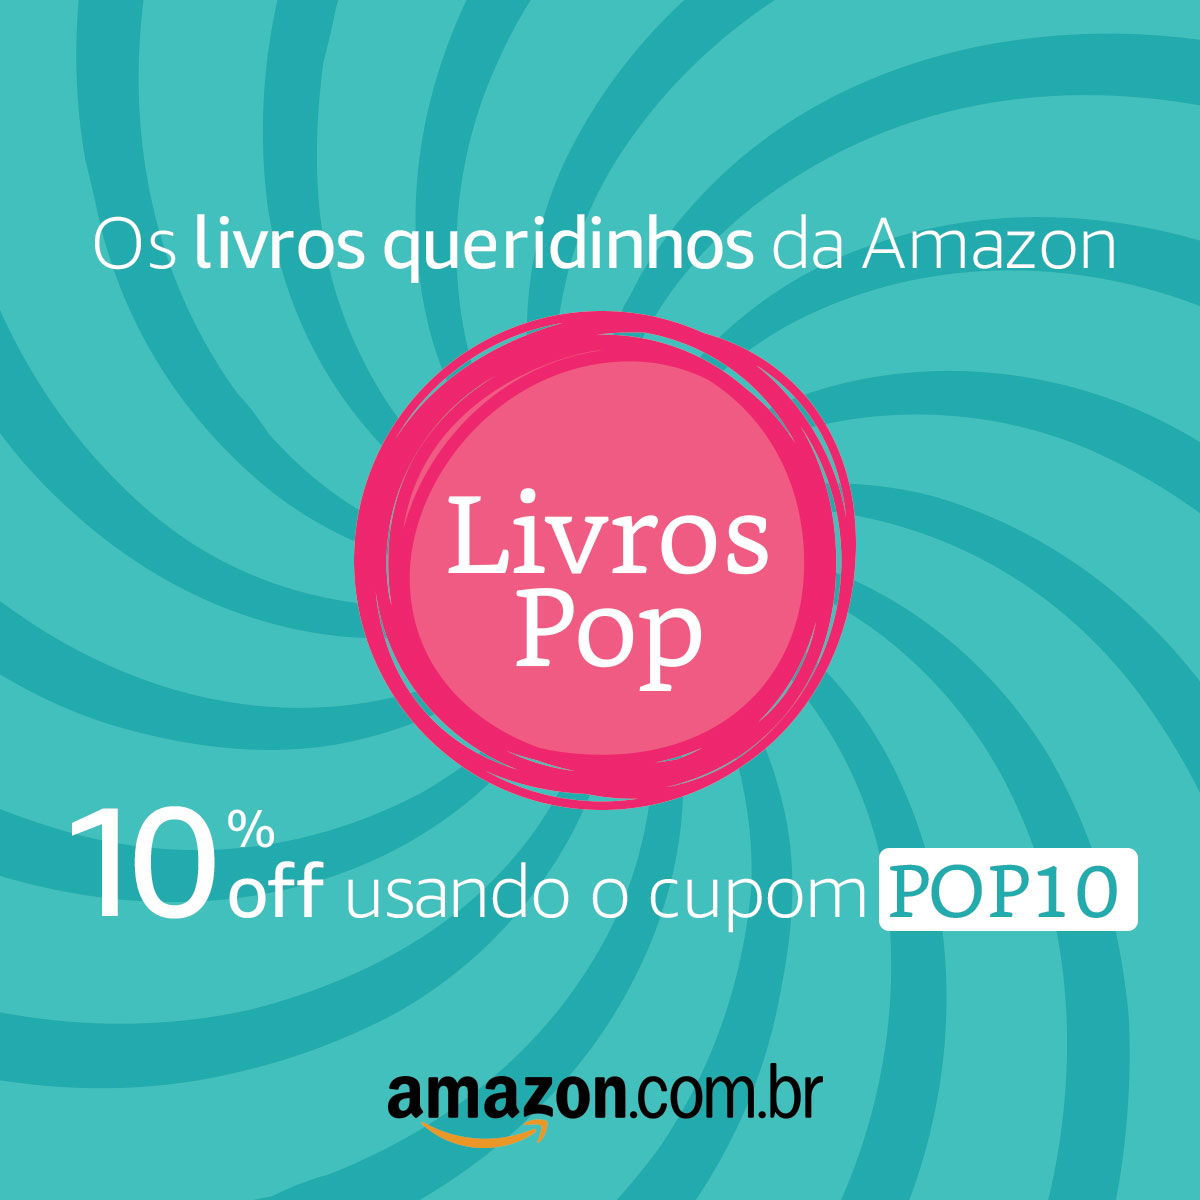 10% OFF COM O CUPOM POP10